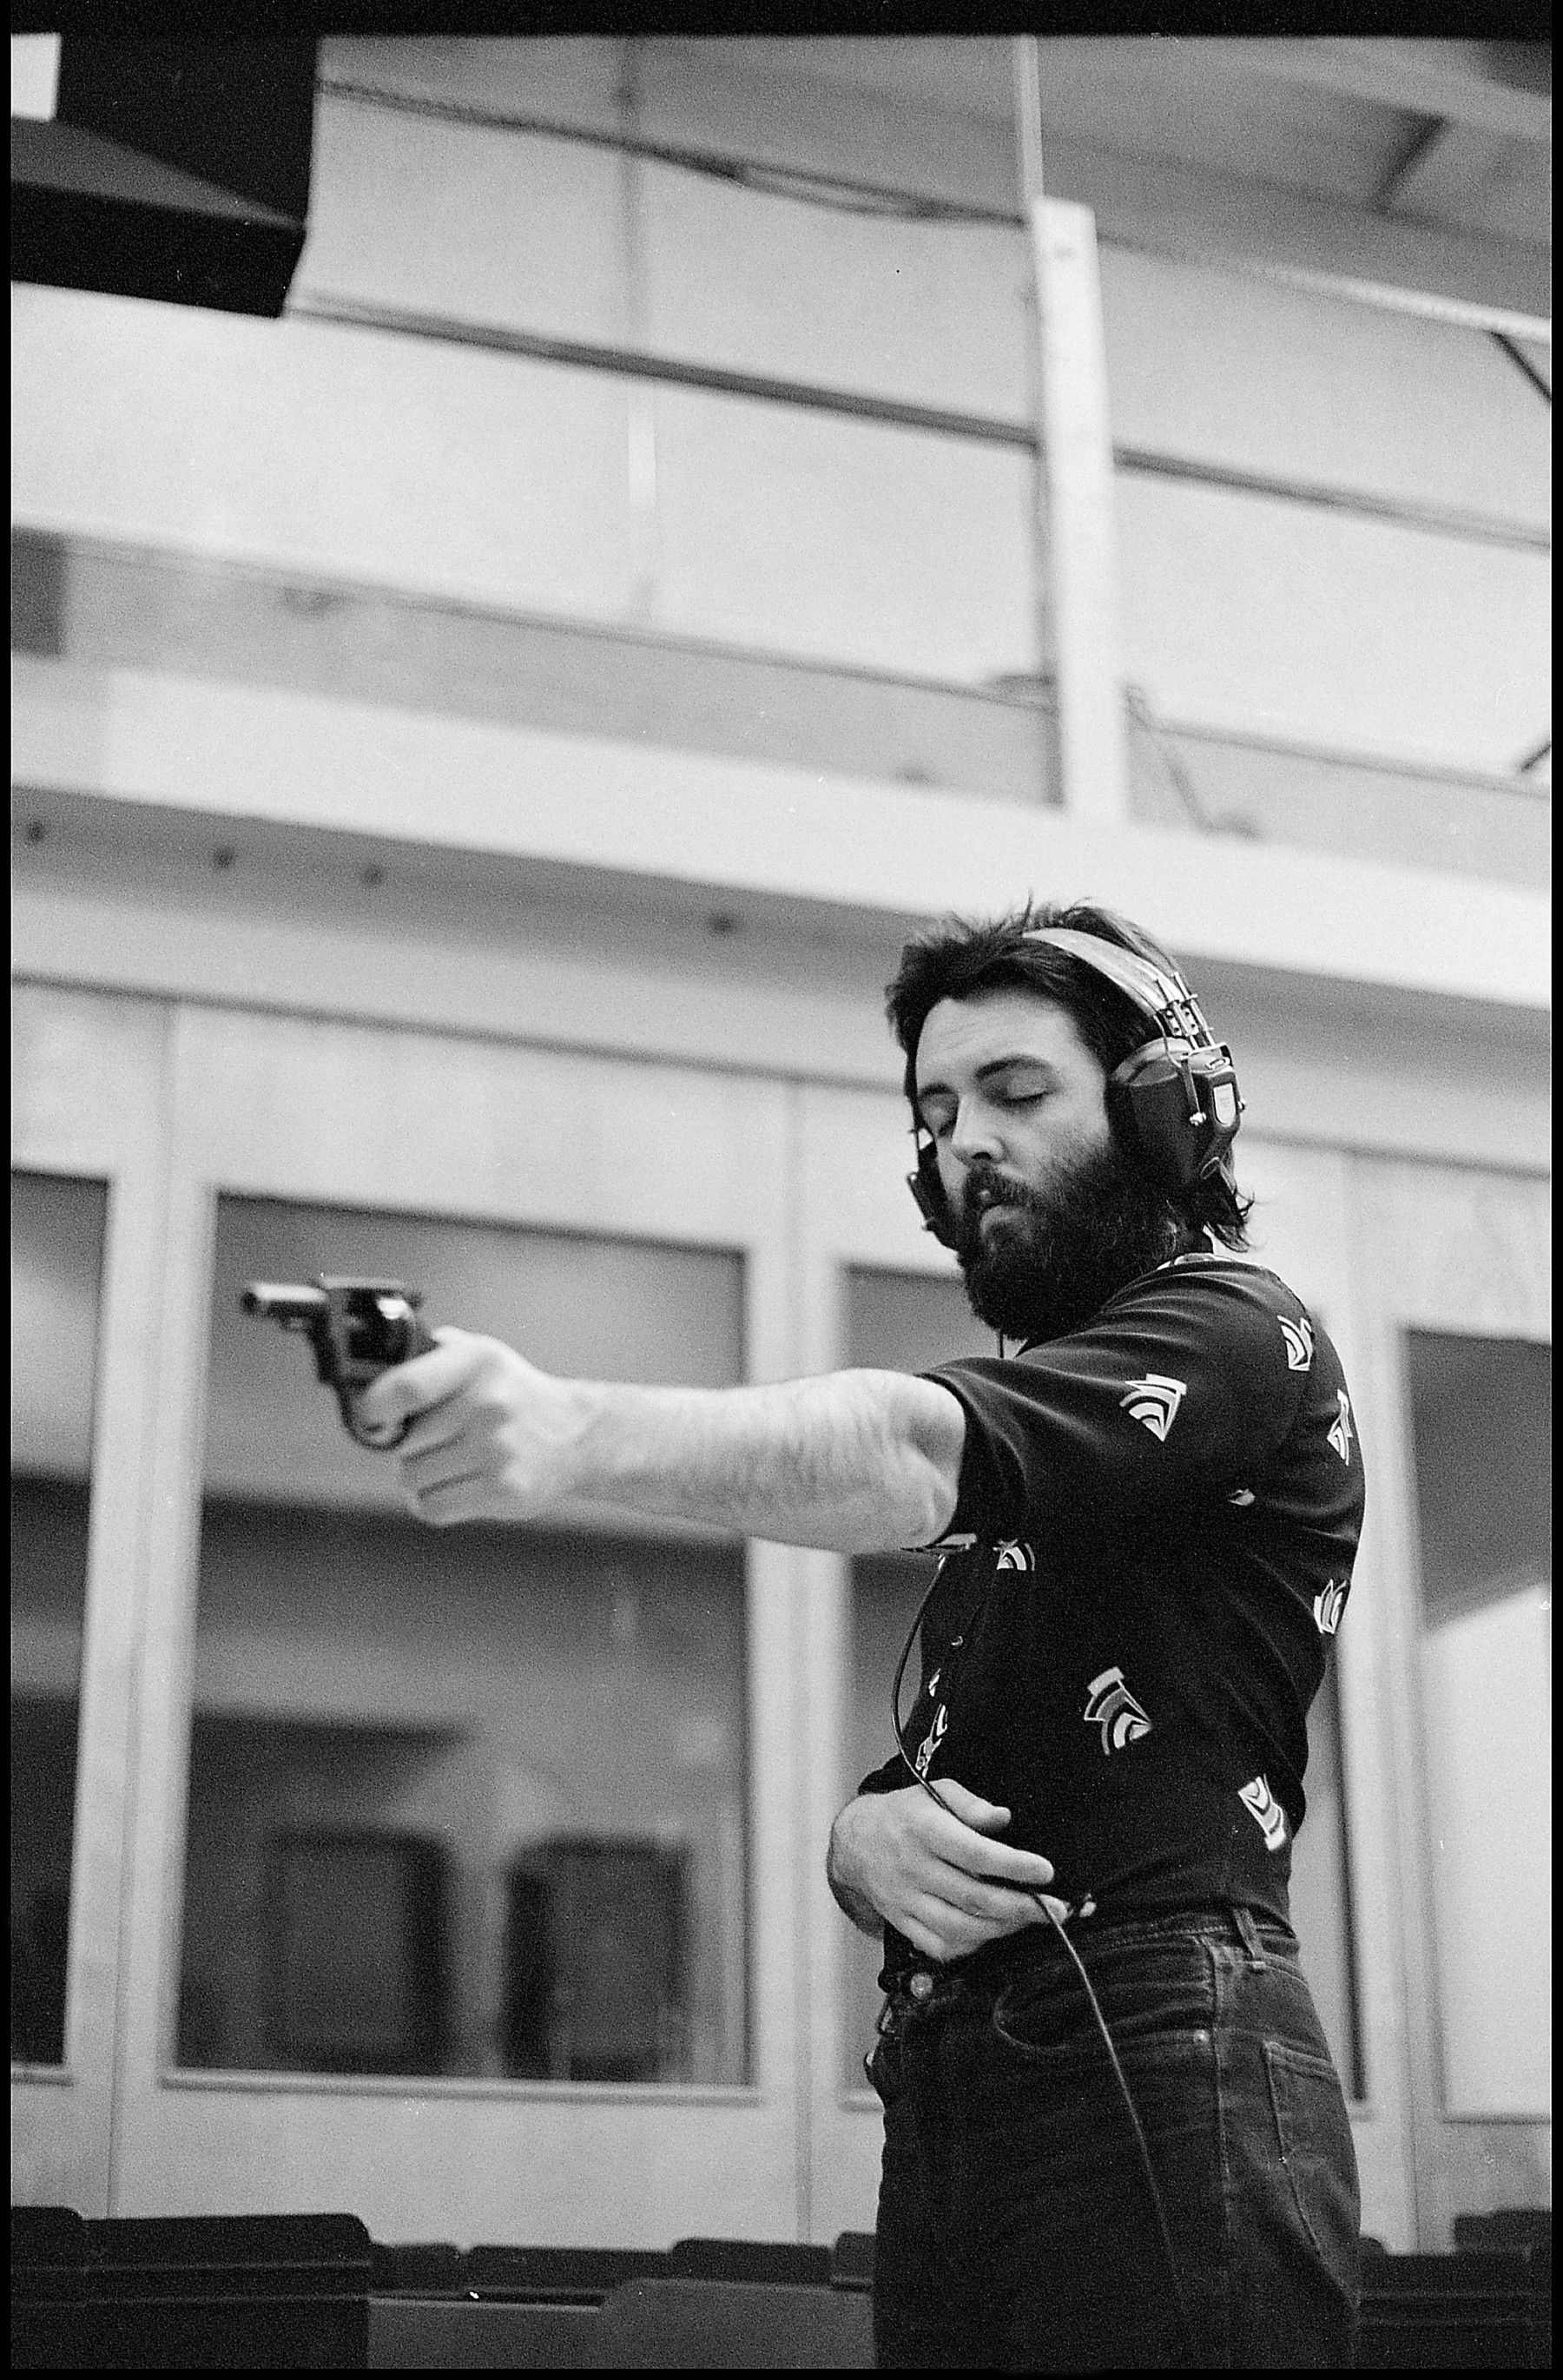 Paul during the 'RAM' recording sessions, A&R Studios, New